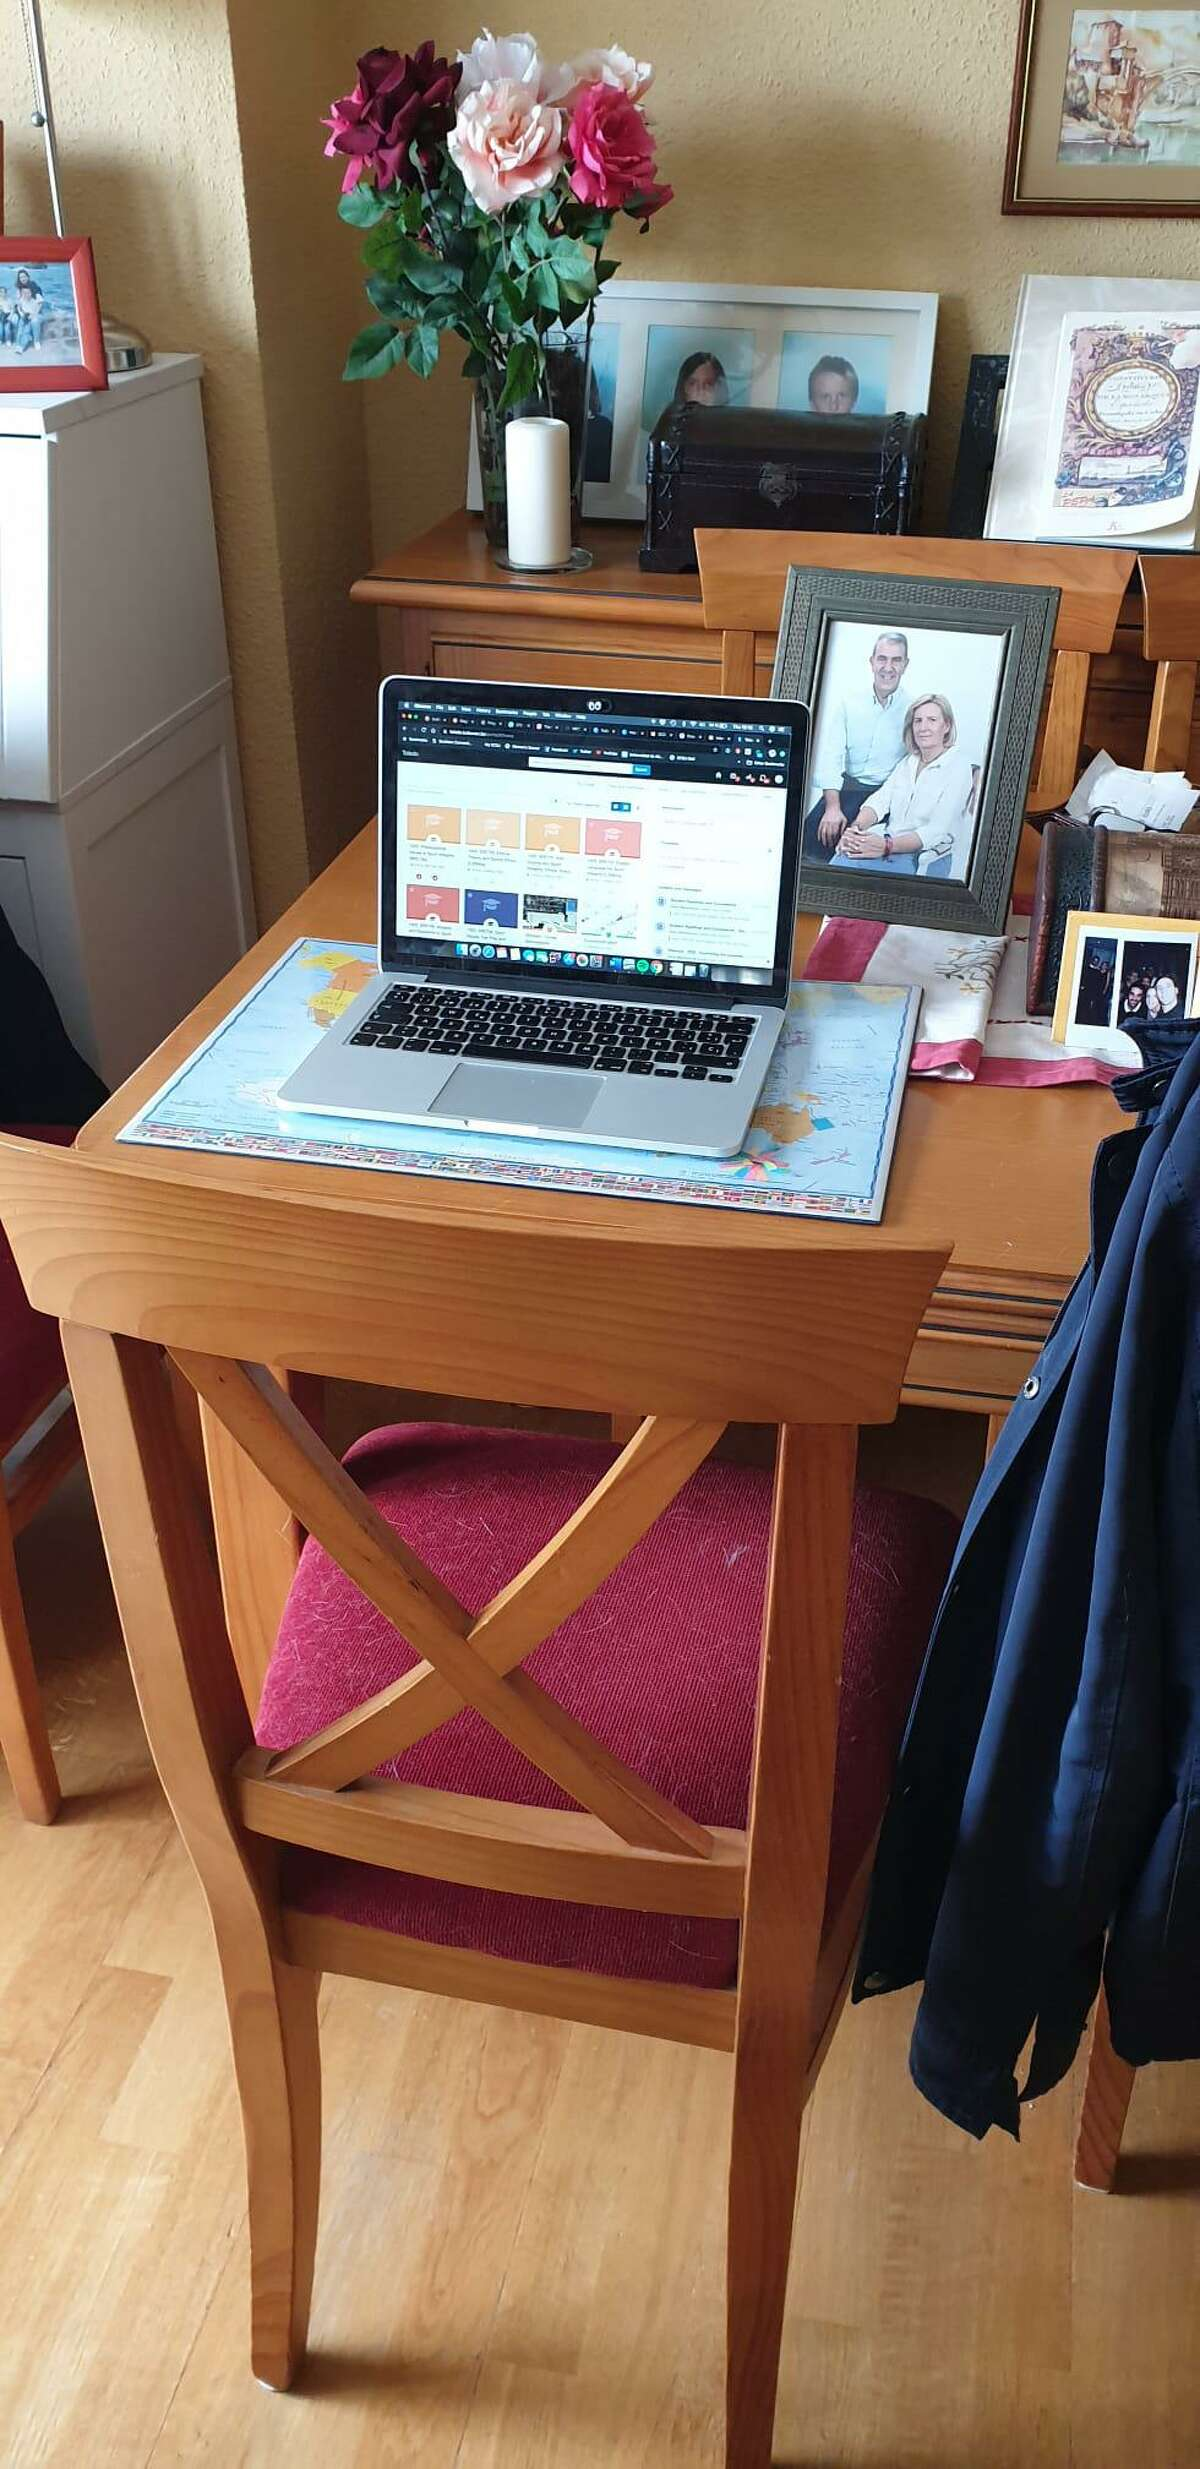 Vicky Conde, a 2017 graduate from Southern Connecticut State University, shows off her workspace in self-isolation in Spain.